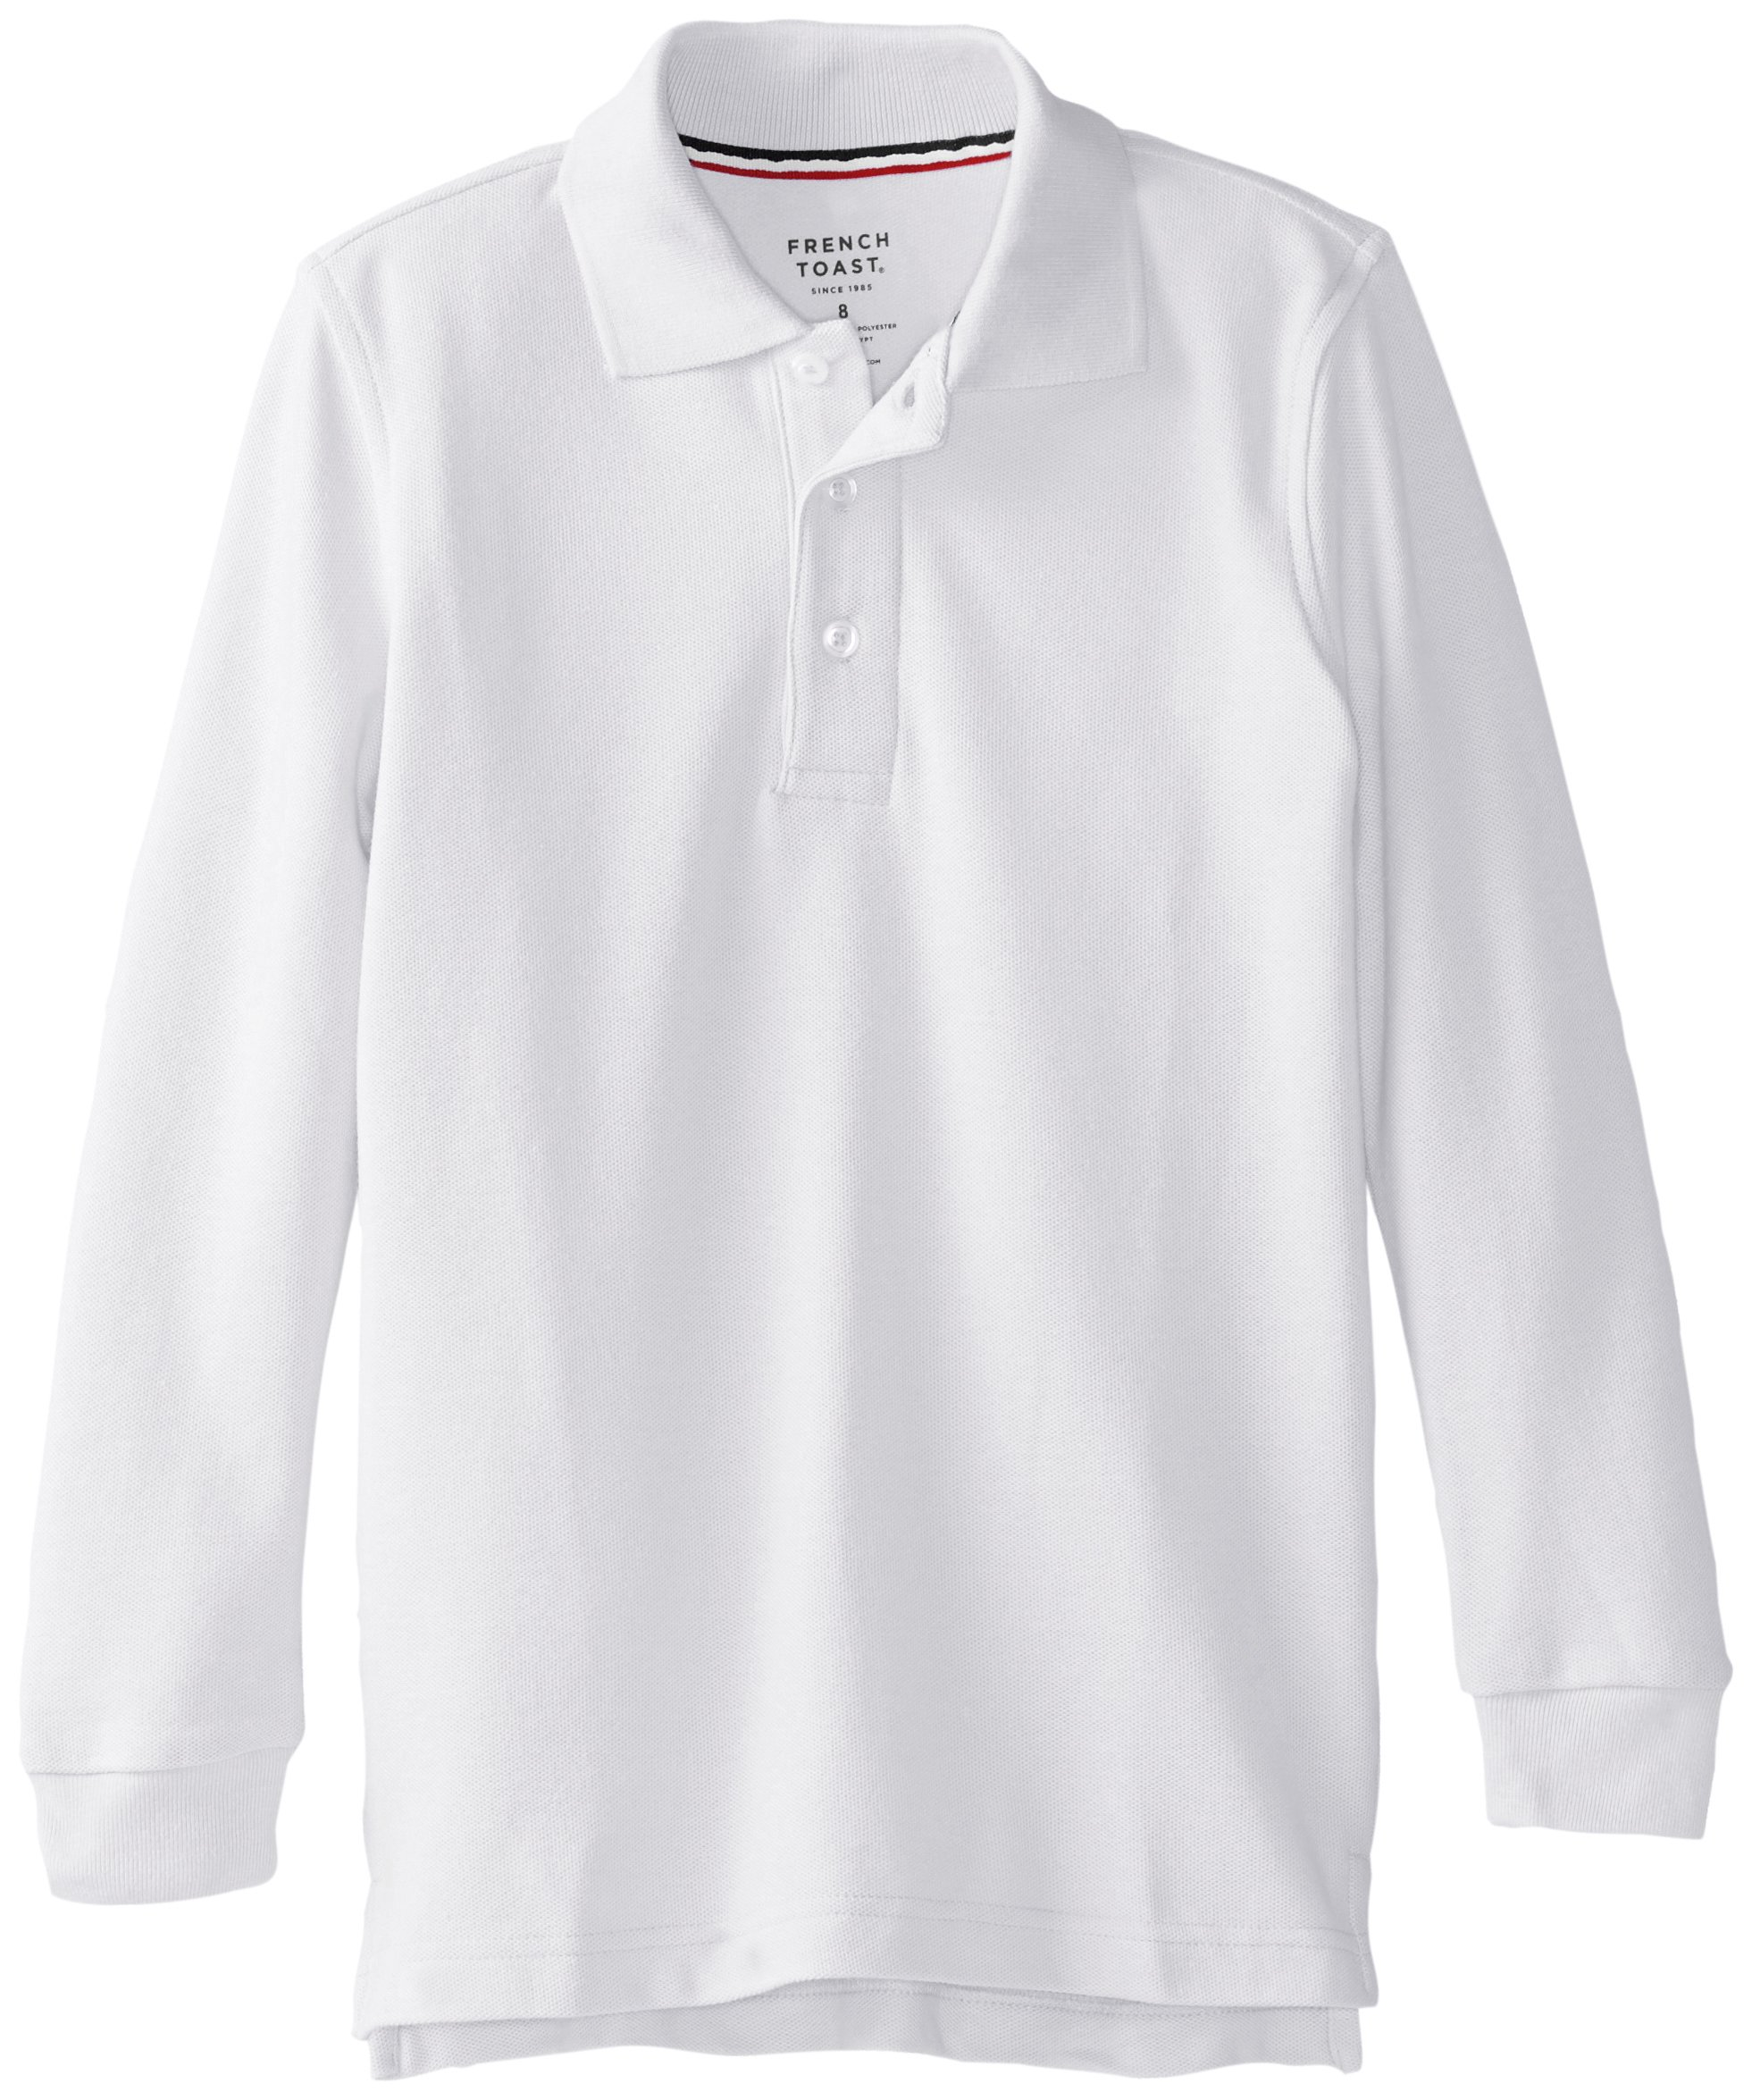 French Toast Big Boys' Long Sleeve Pique Polo, White, 10 by French Toast (Image #1)